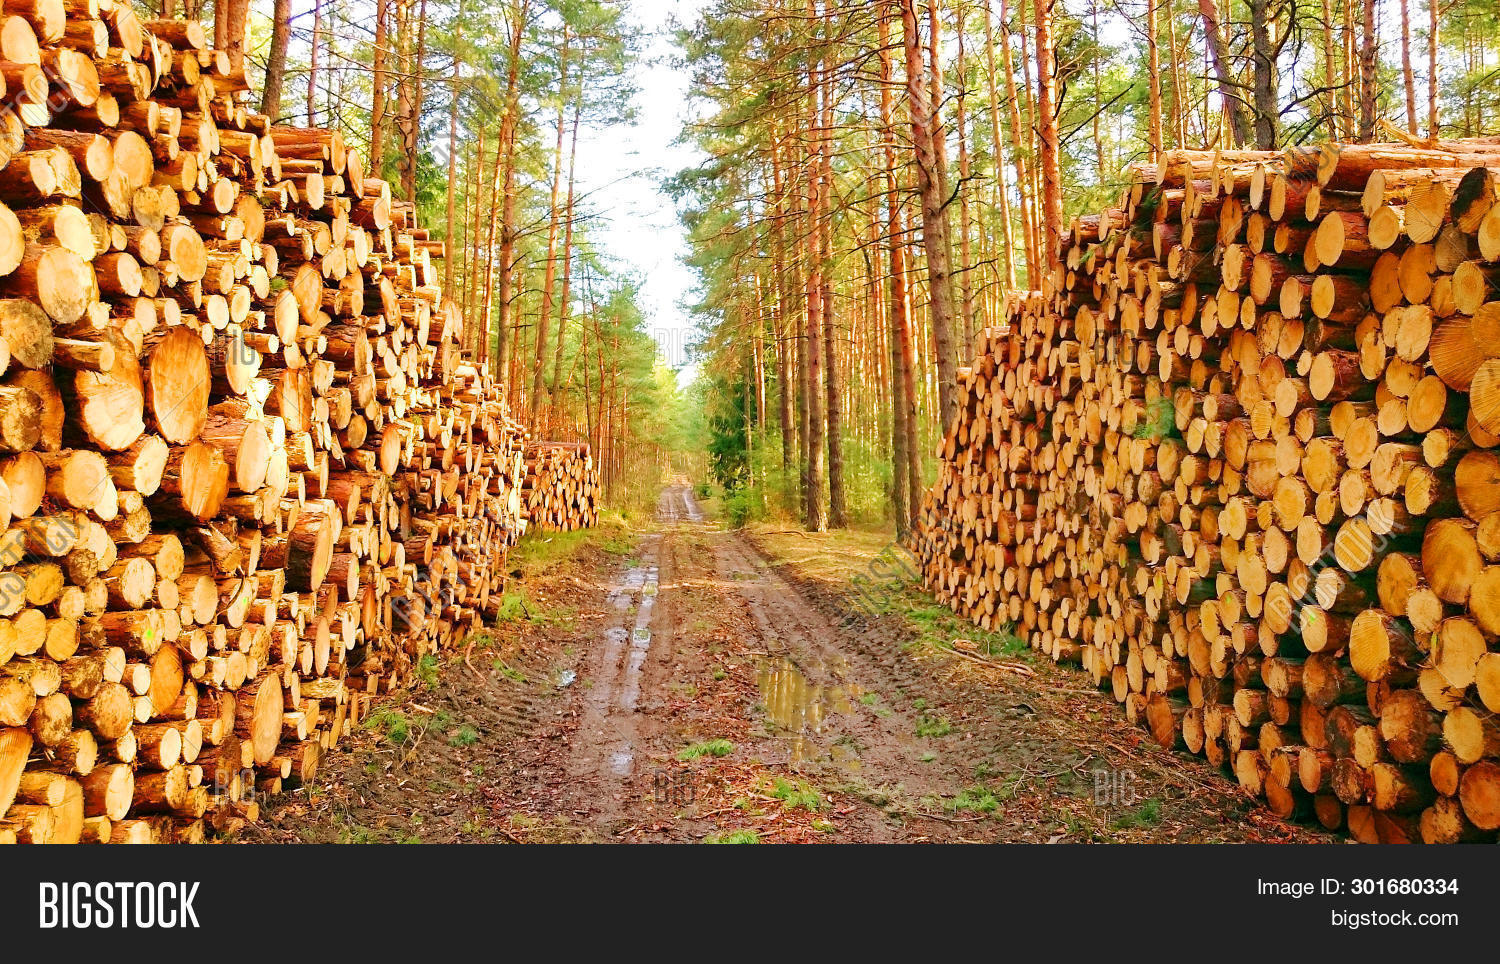 agriculture,alternative,alternative energy,alternative fuel,biomass,business,commodity,deforestation,ecology,ecosystem,energy,environment,fire wood,firewood,forest,forestry,fuel,harvest,harvesting,heating,industry,log,lumber industry,lumber mill,lumber wood,lumber yard,lumberjack,material,natural,nature,pine,product,renewable energy,road,saw,source,spruce,stack,stack of wood,sustainability,sustainable,sustainable development,sustainable energy,timber,tree,trunk,winter,wood,wooden,woodland